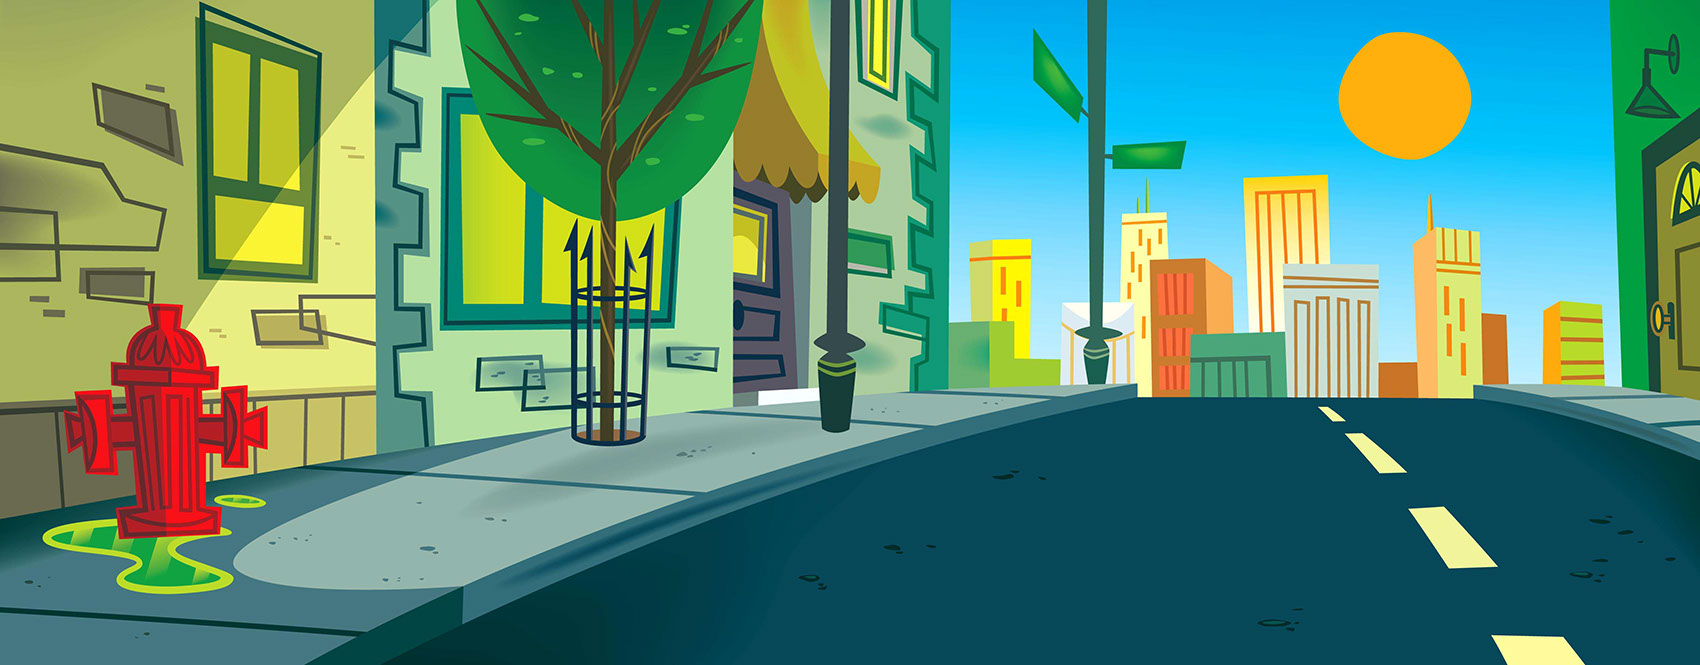 illustration-Landscapes_City neighborhood at dusk-John Hom